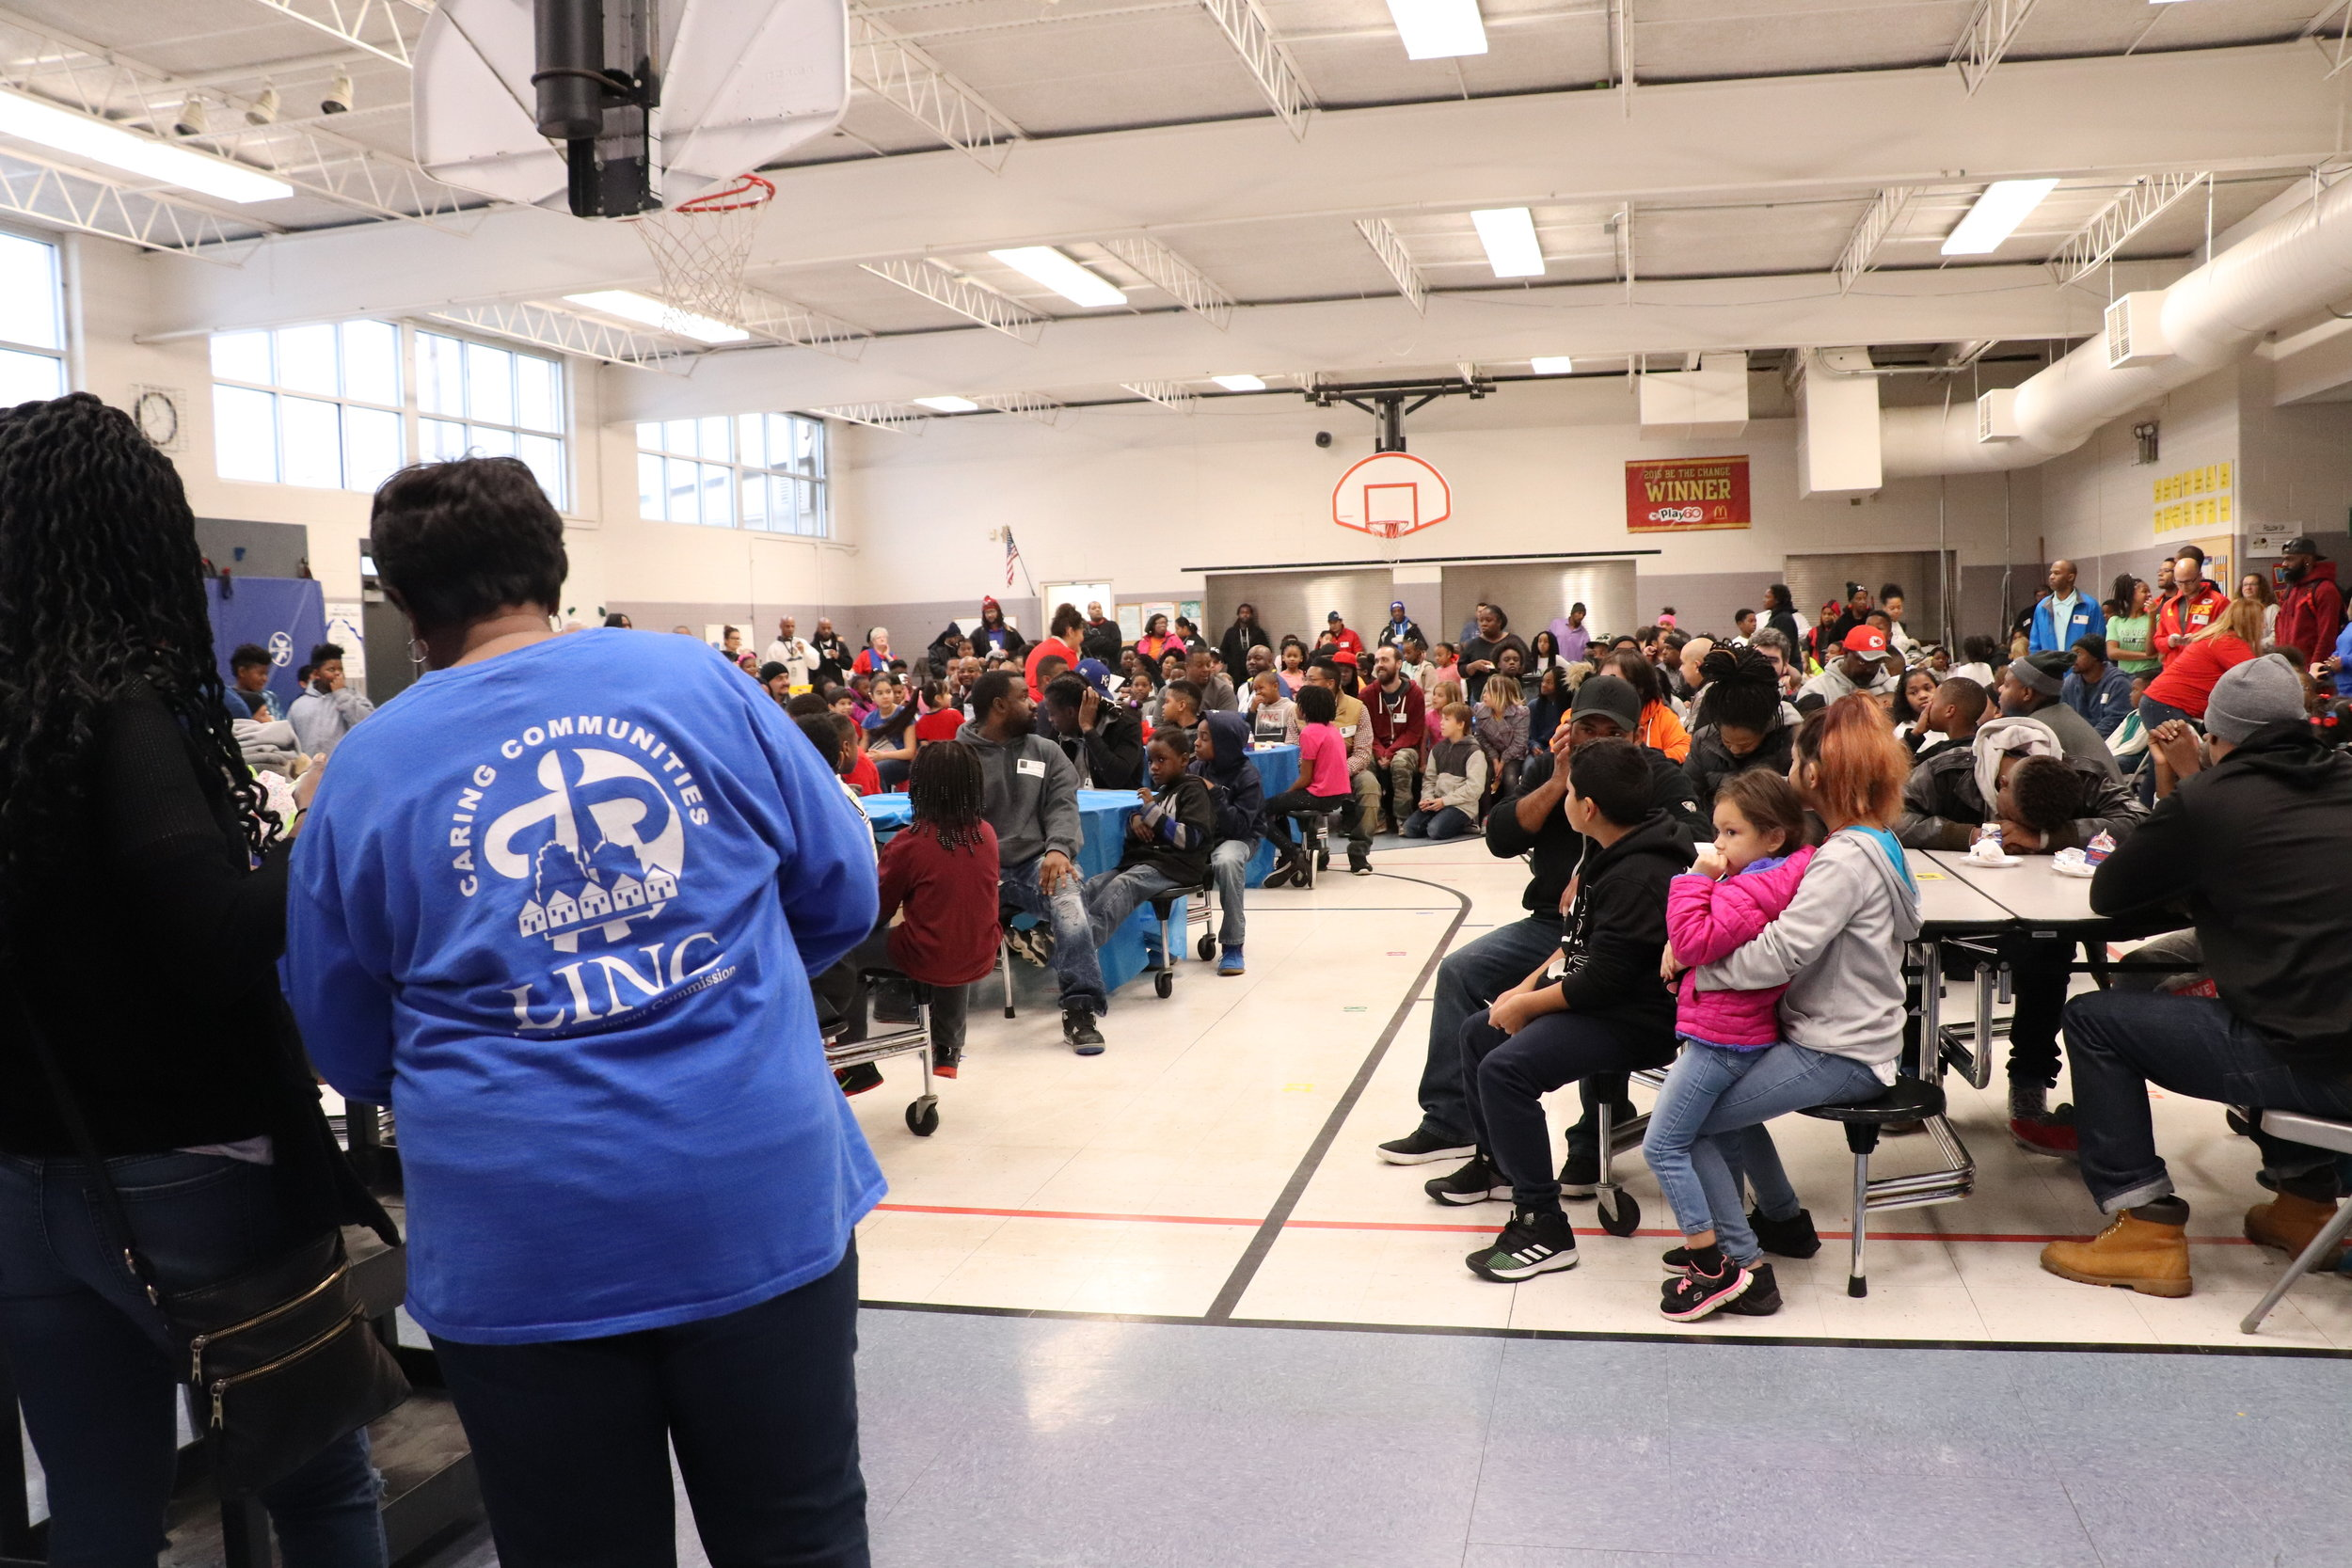 Families at Johnson Elementary gather for a Donuts for Dads event.